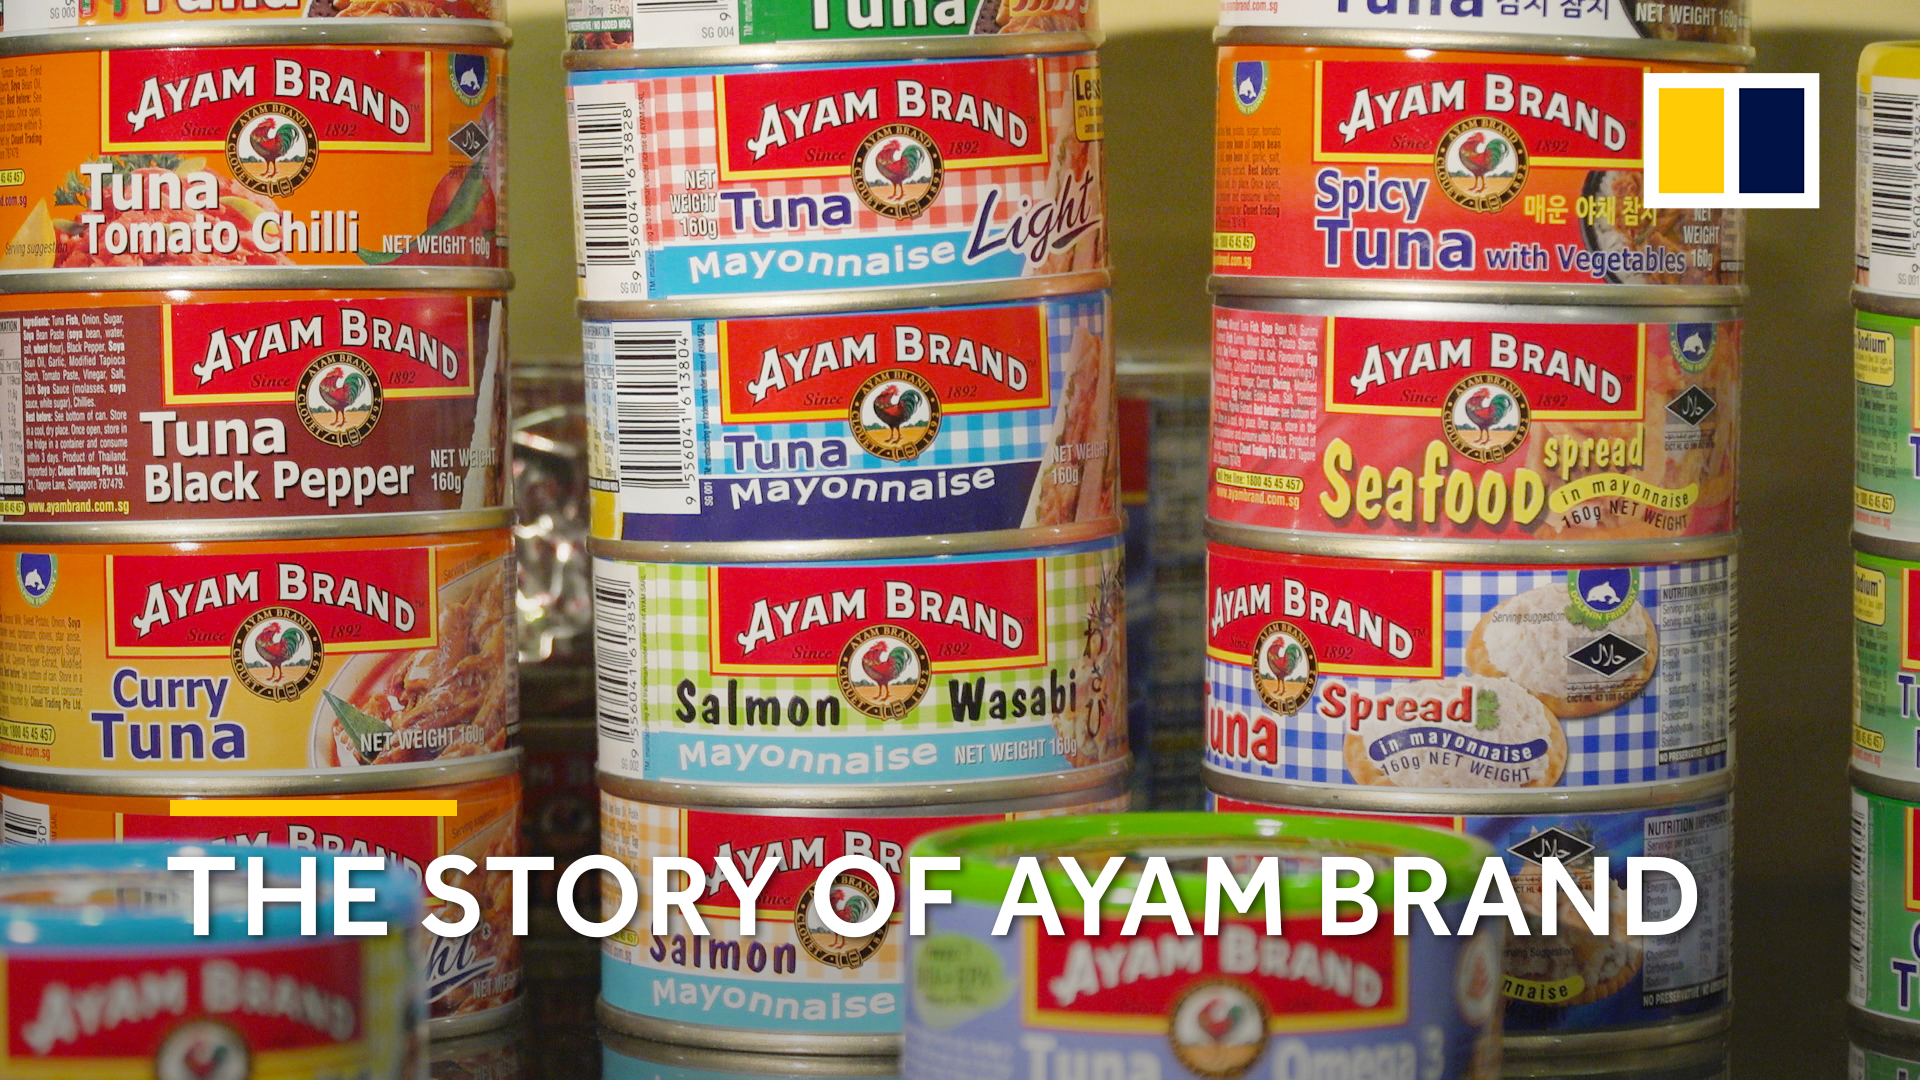 Asian Kitchen Le Havre the story of ayam brand, set up in singaporea frenchman